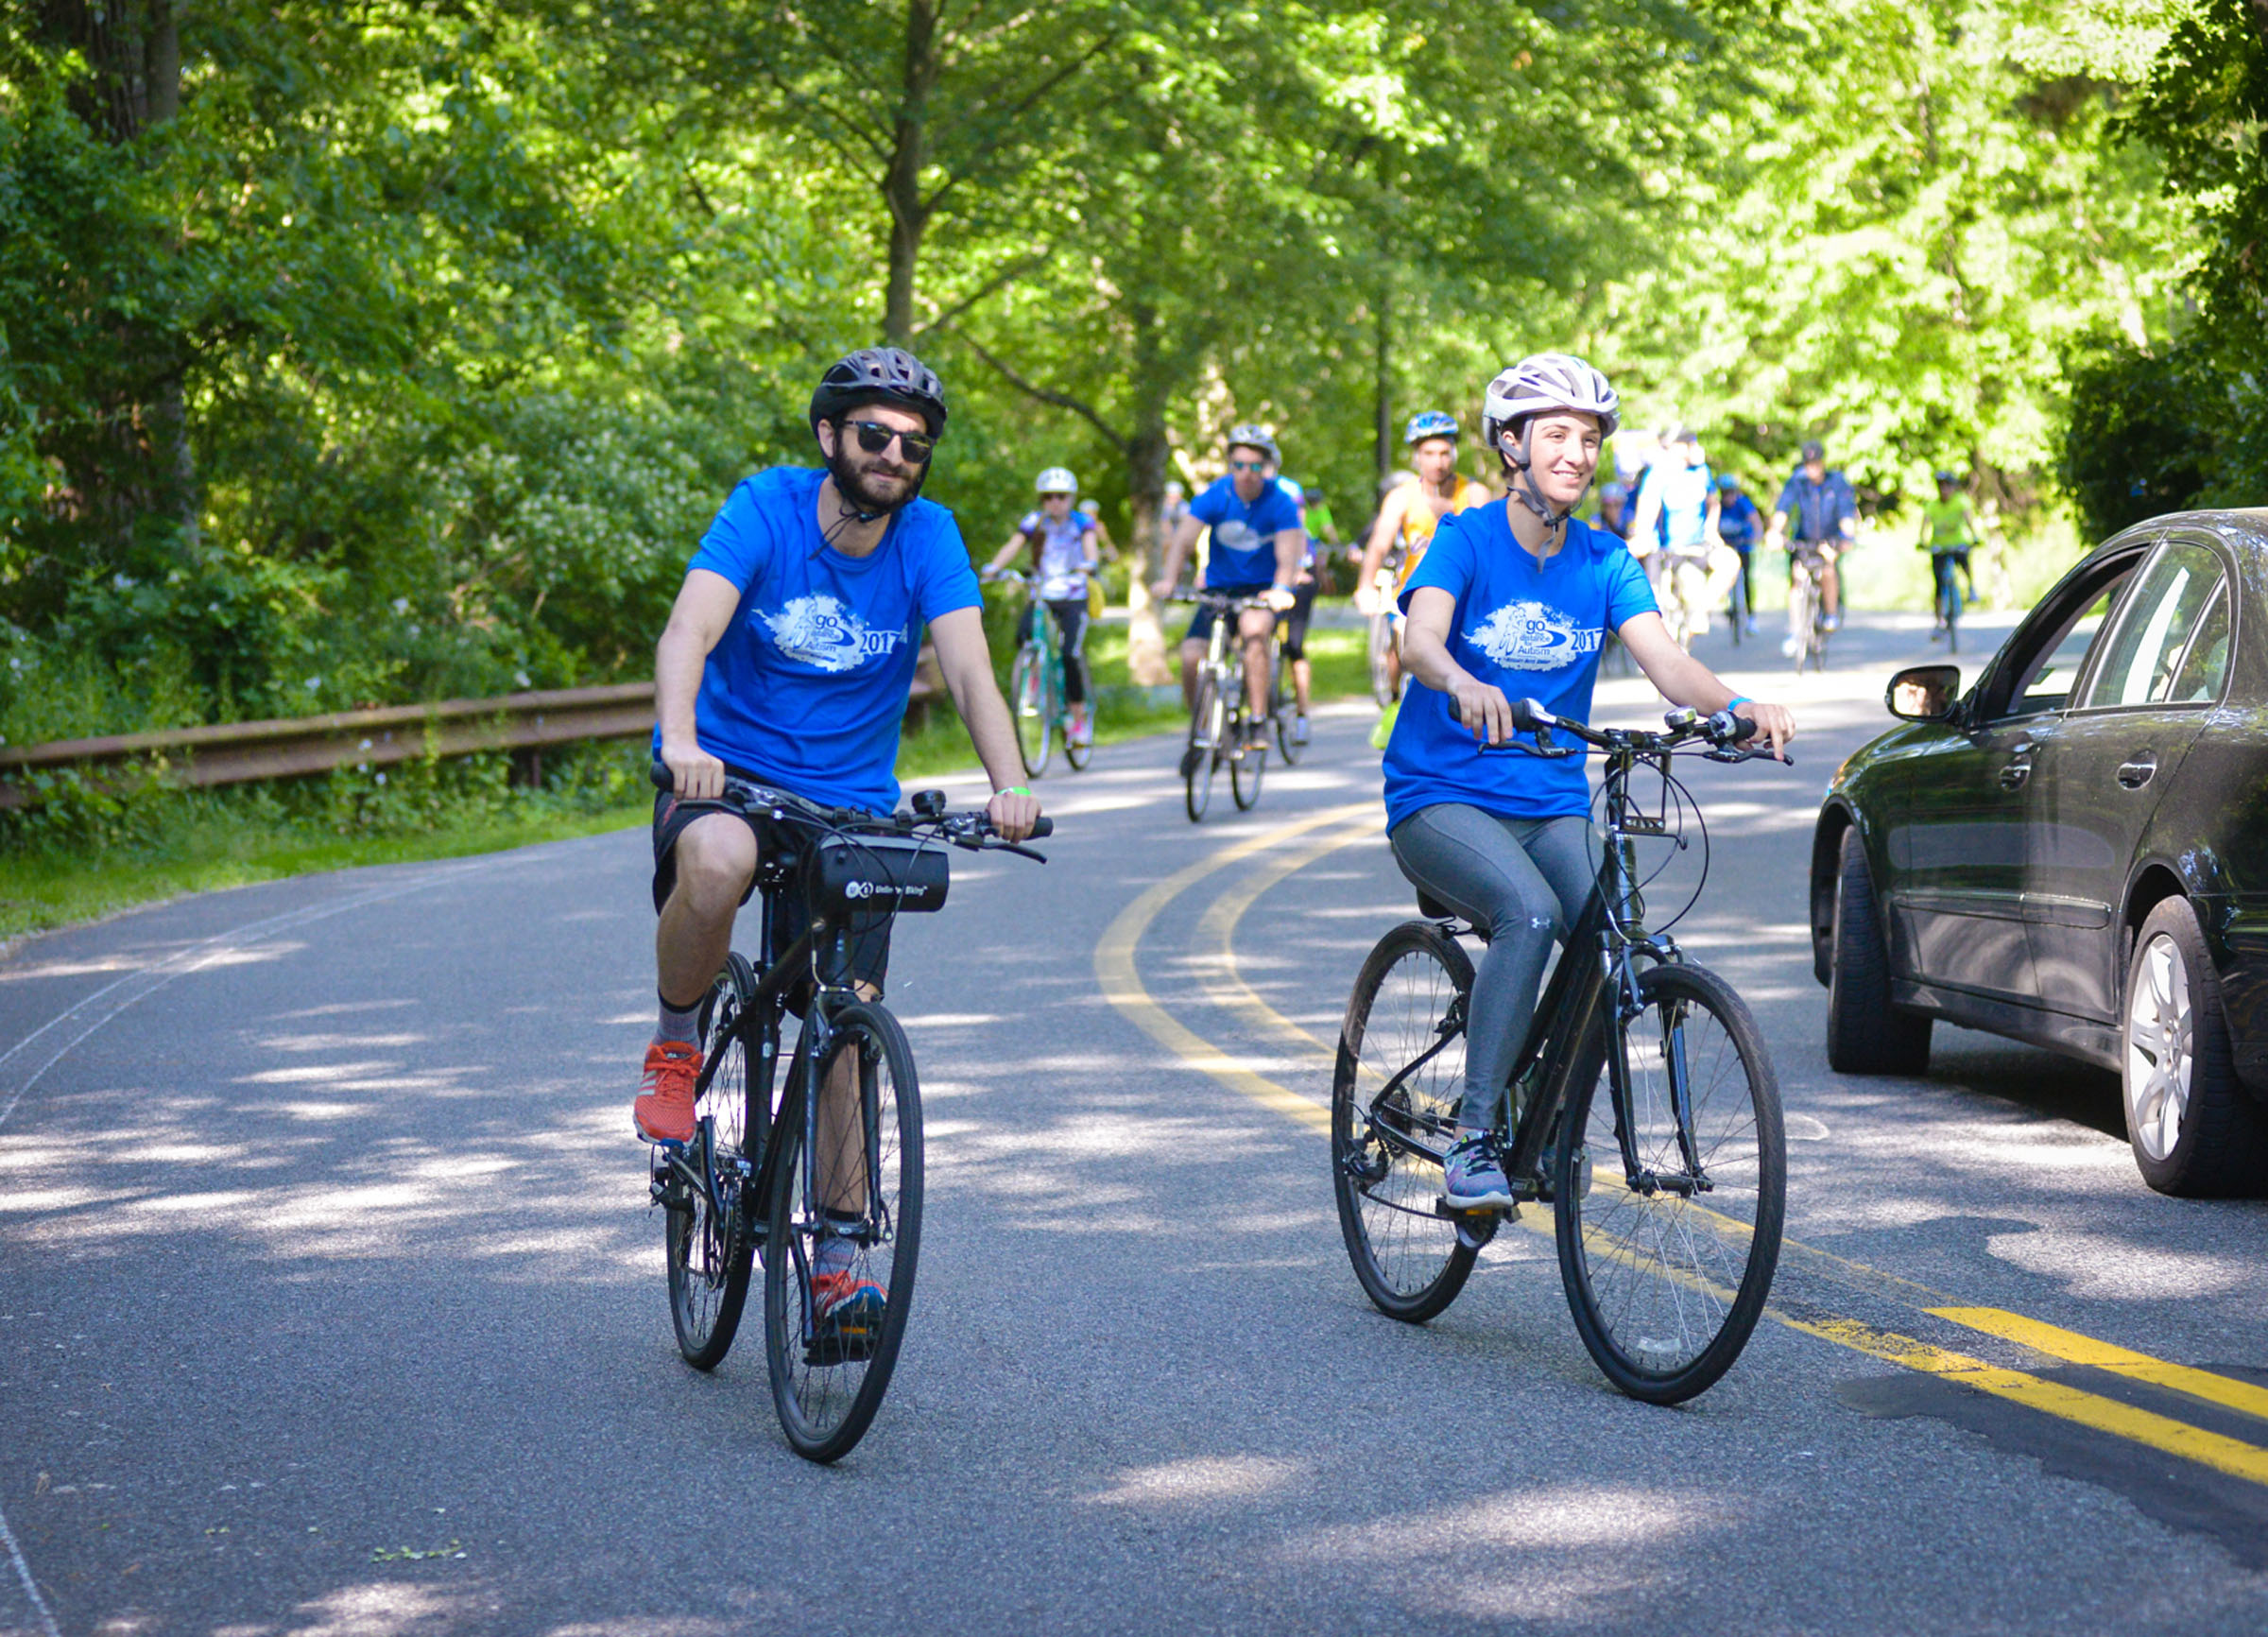 2017-06-04 GTD4A Charity Bike Ride - BCC - Paramus NJ-1903.jpg